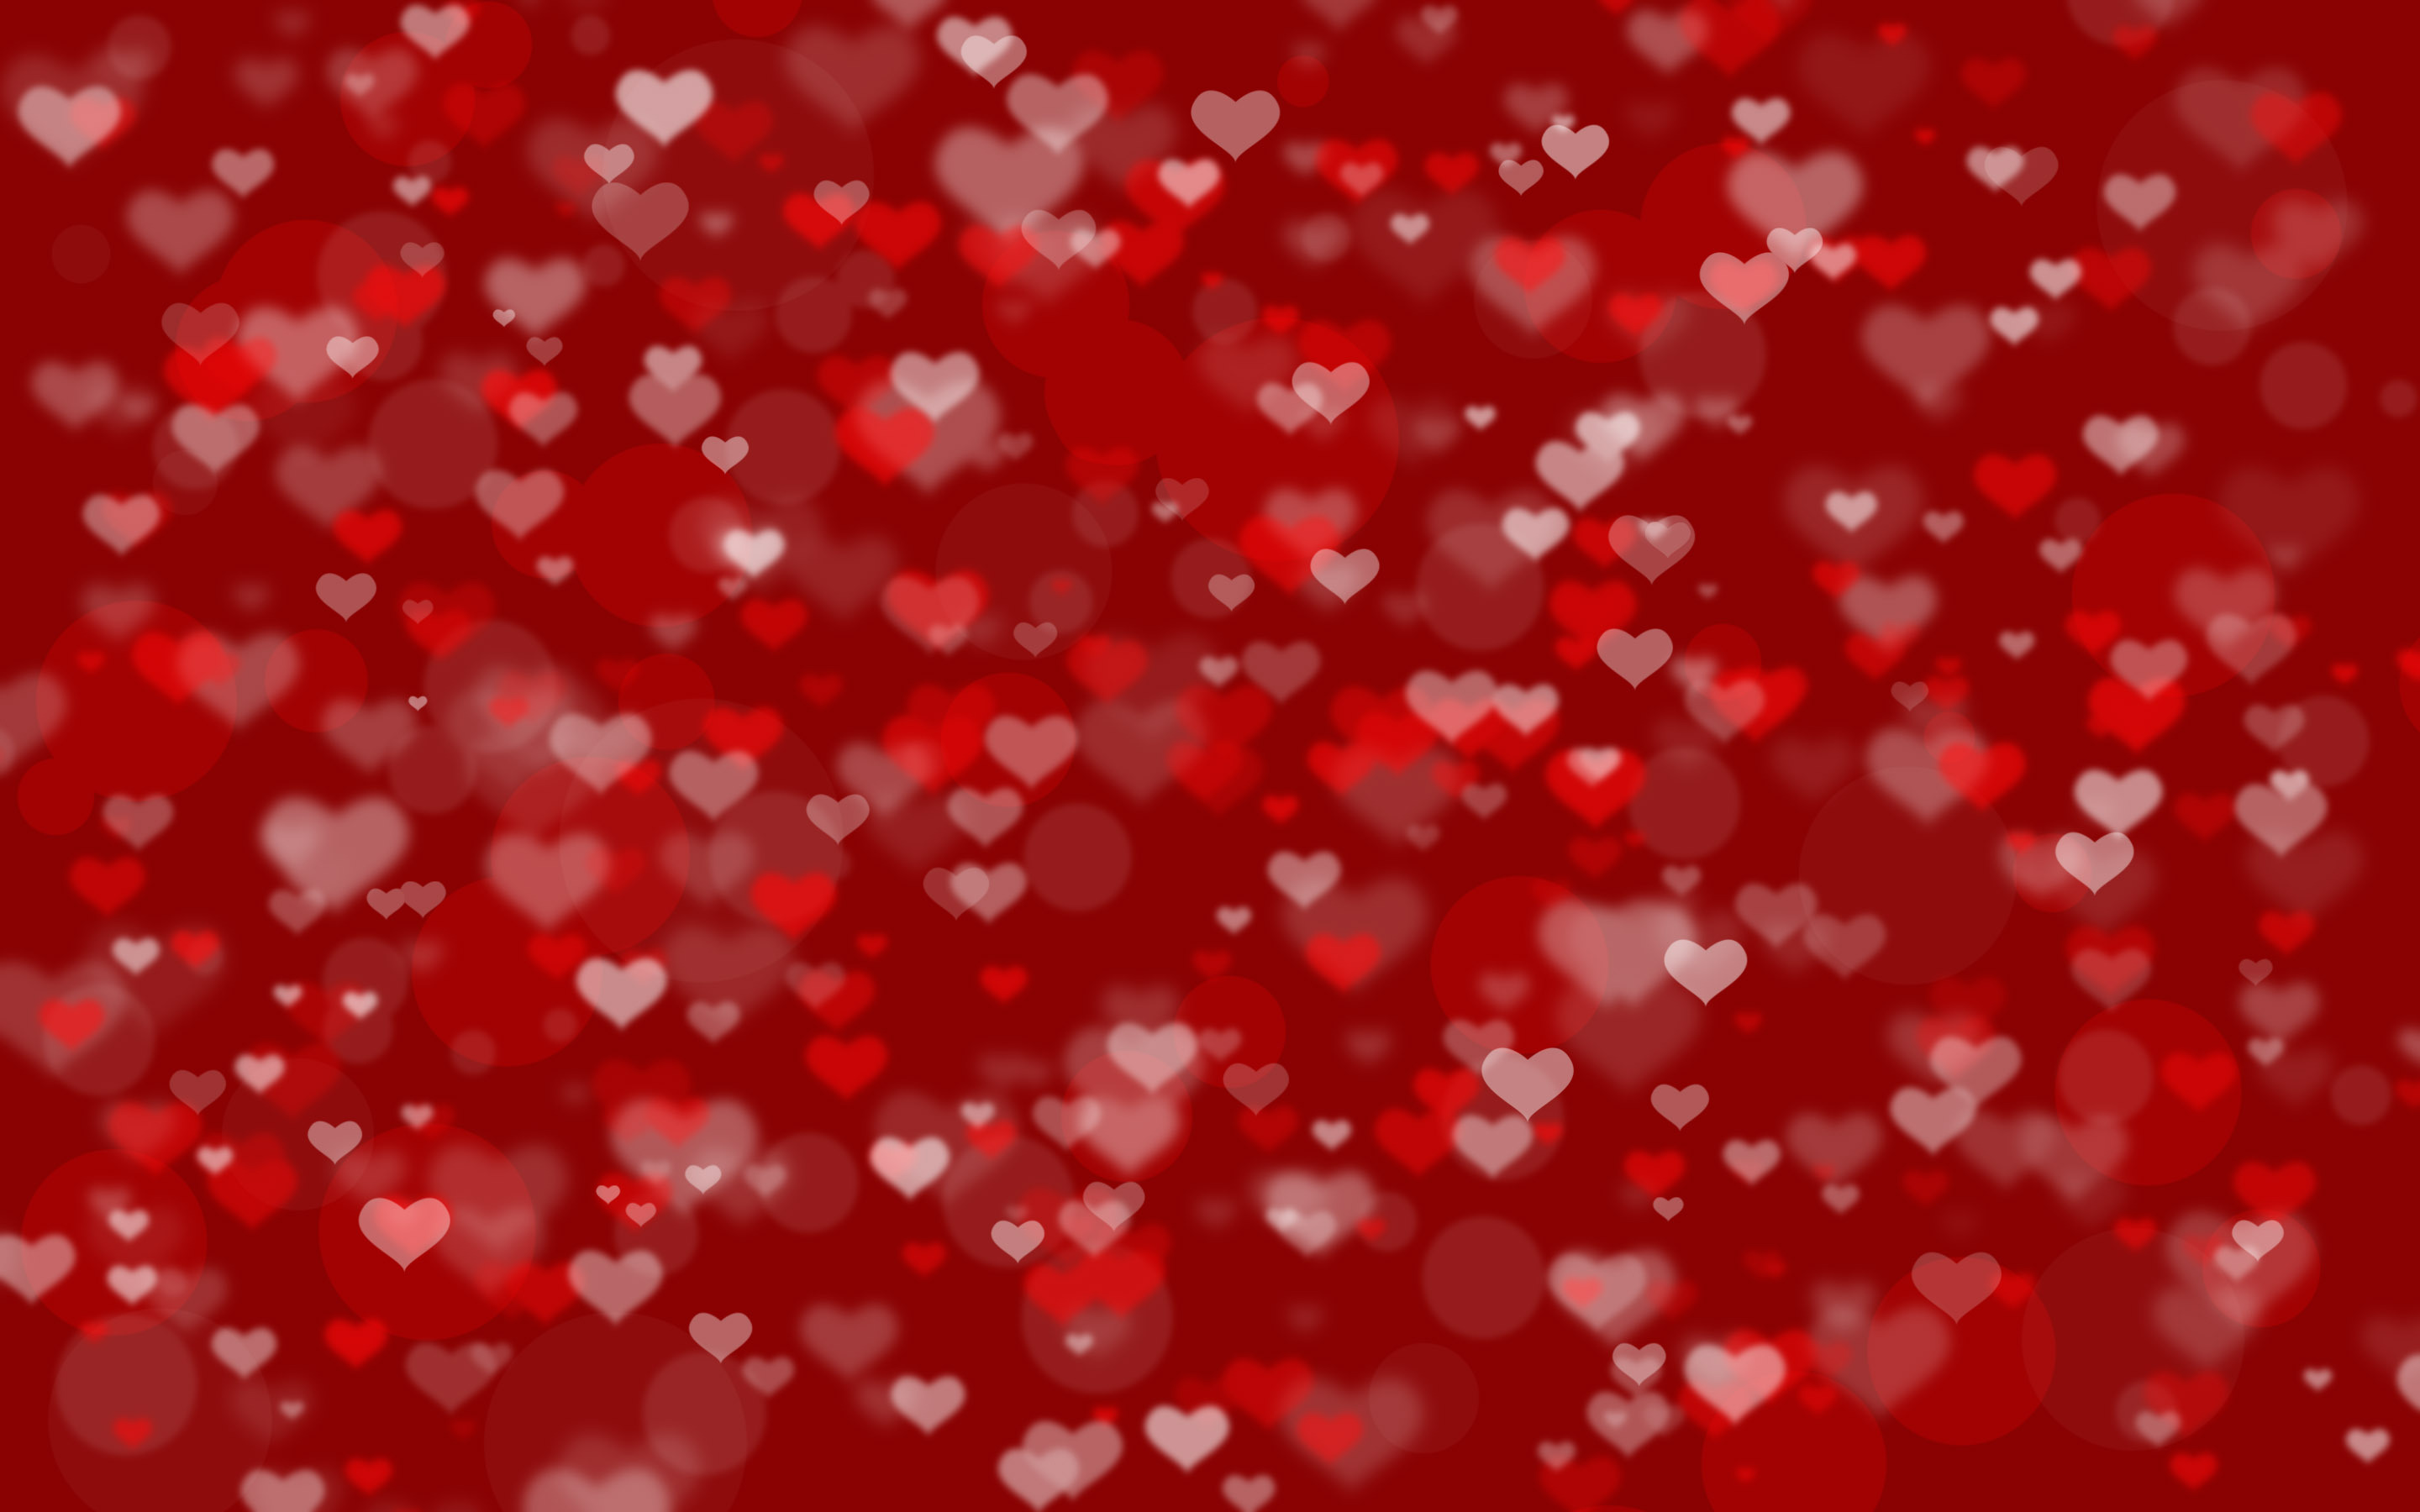 Hearts wallpaper 04 2880x1800 voltagebd Images